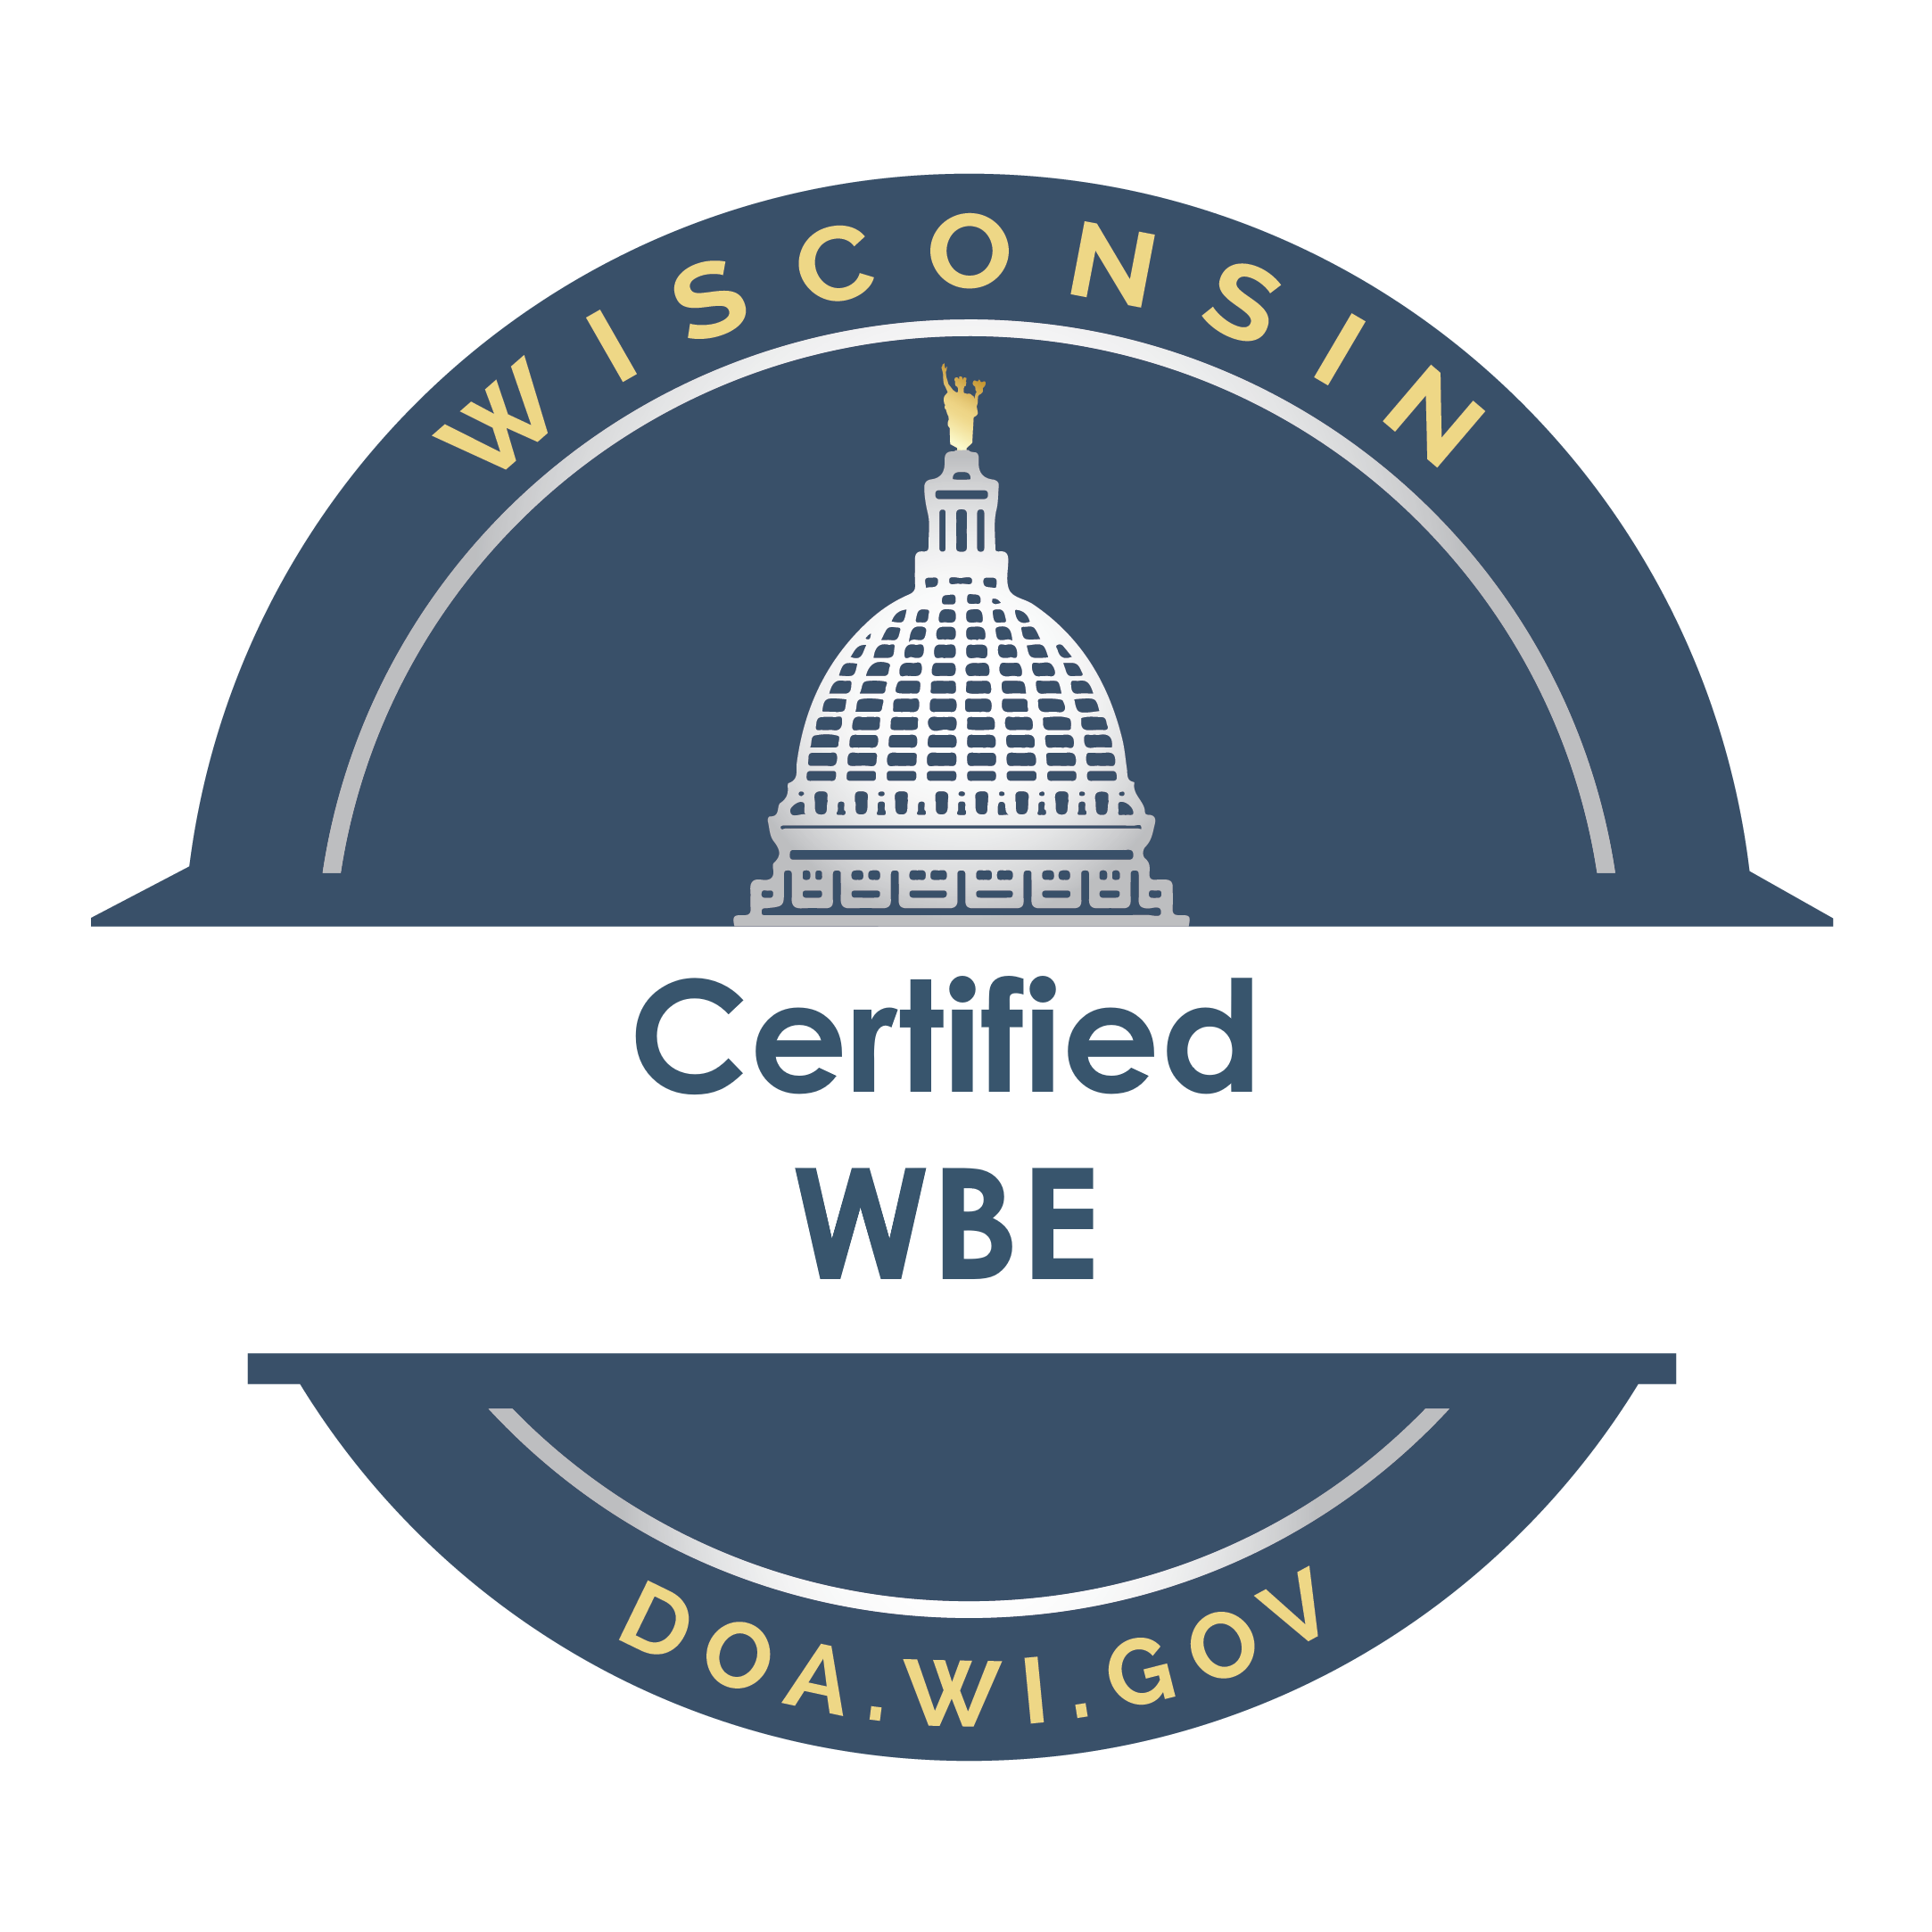 Wisconsin Women's Business Enterprise